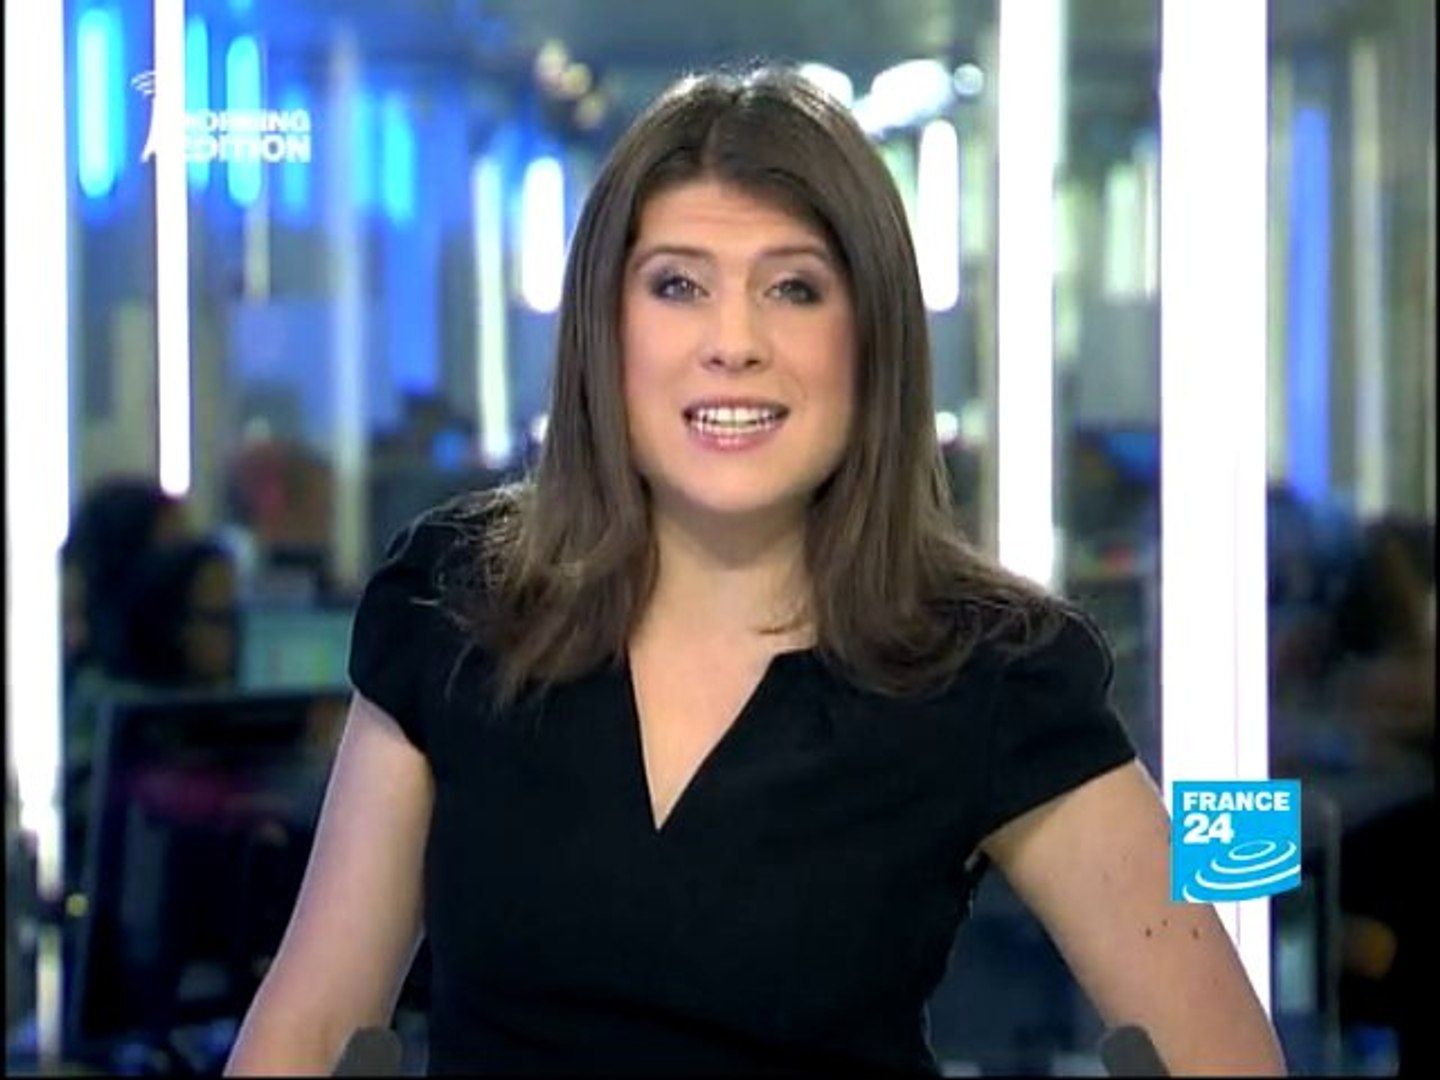 06:17AM FRANCE 24's international news flash